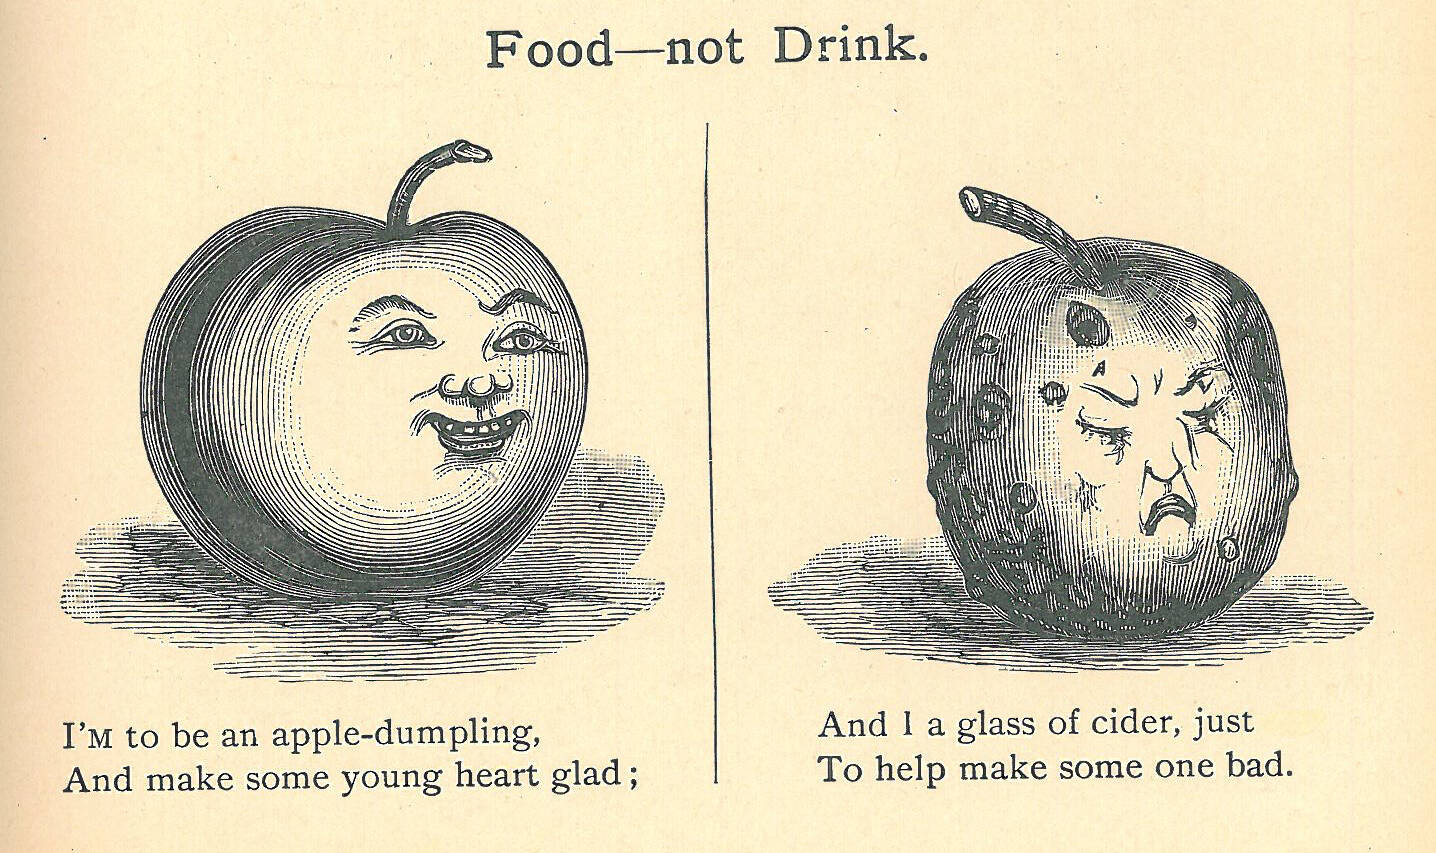 Edward Carswell, Food not Drink, Temperance Stories and Sketches Illustrated with Pen and Pencil. Courtesy of the Oshawa Museum.